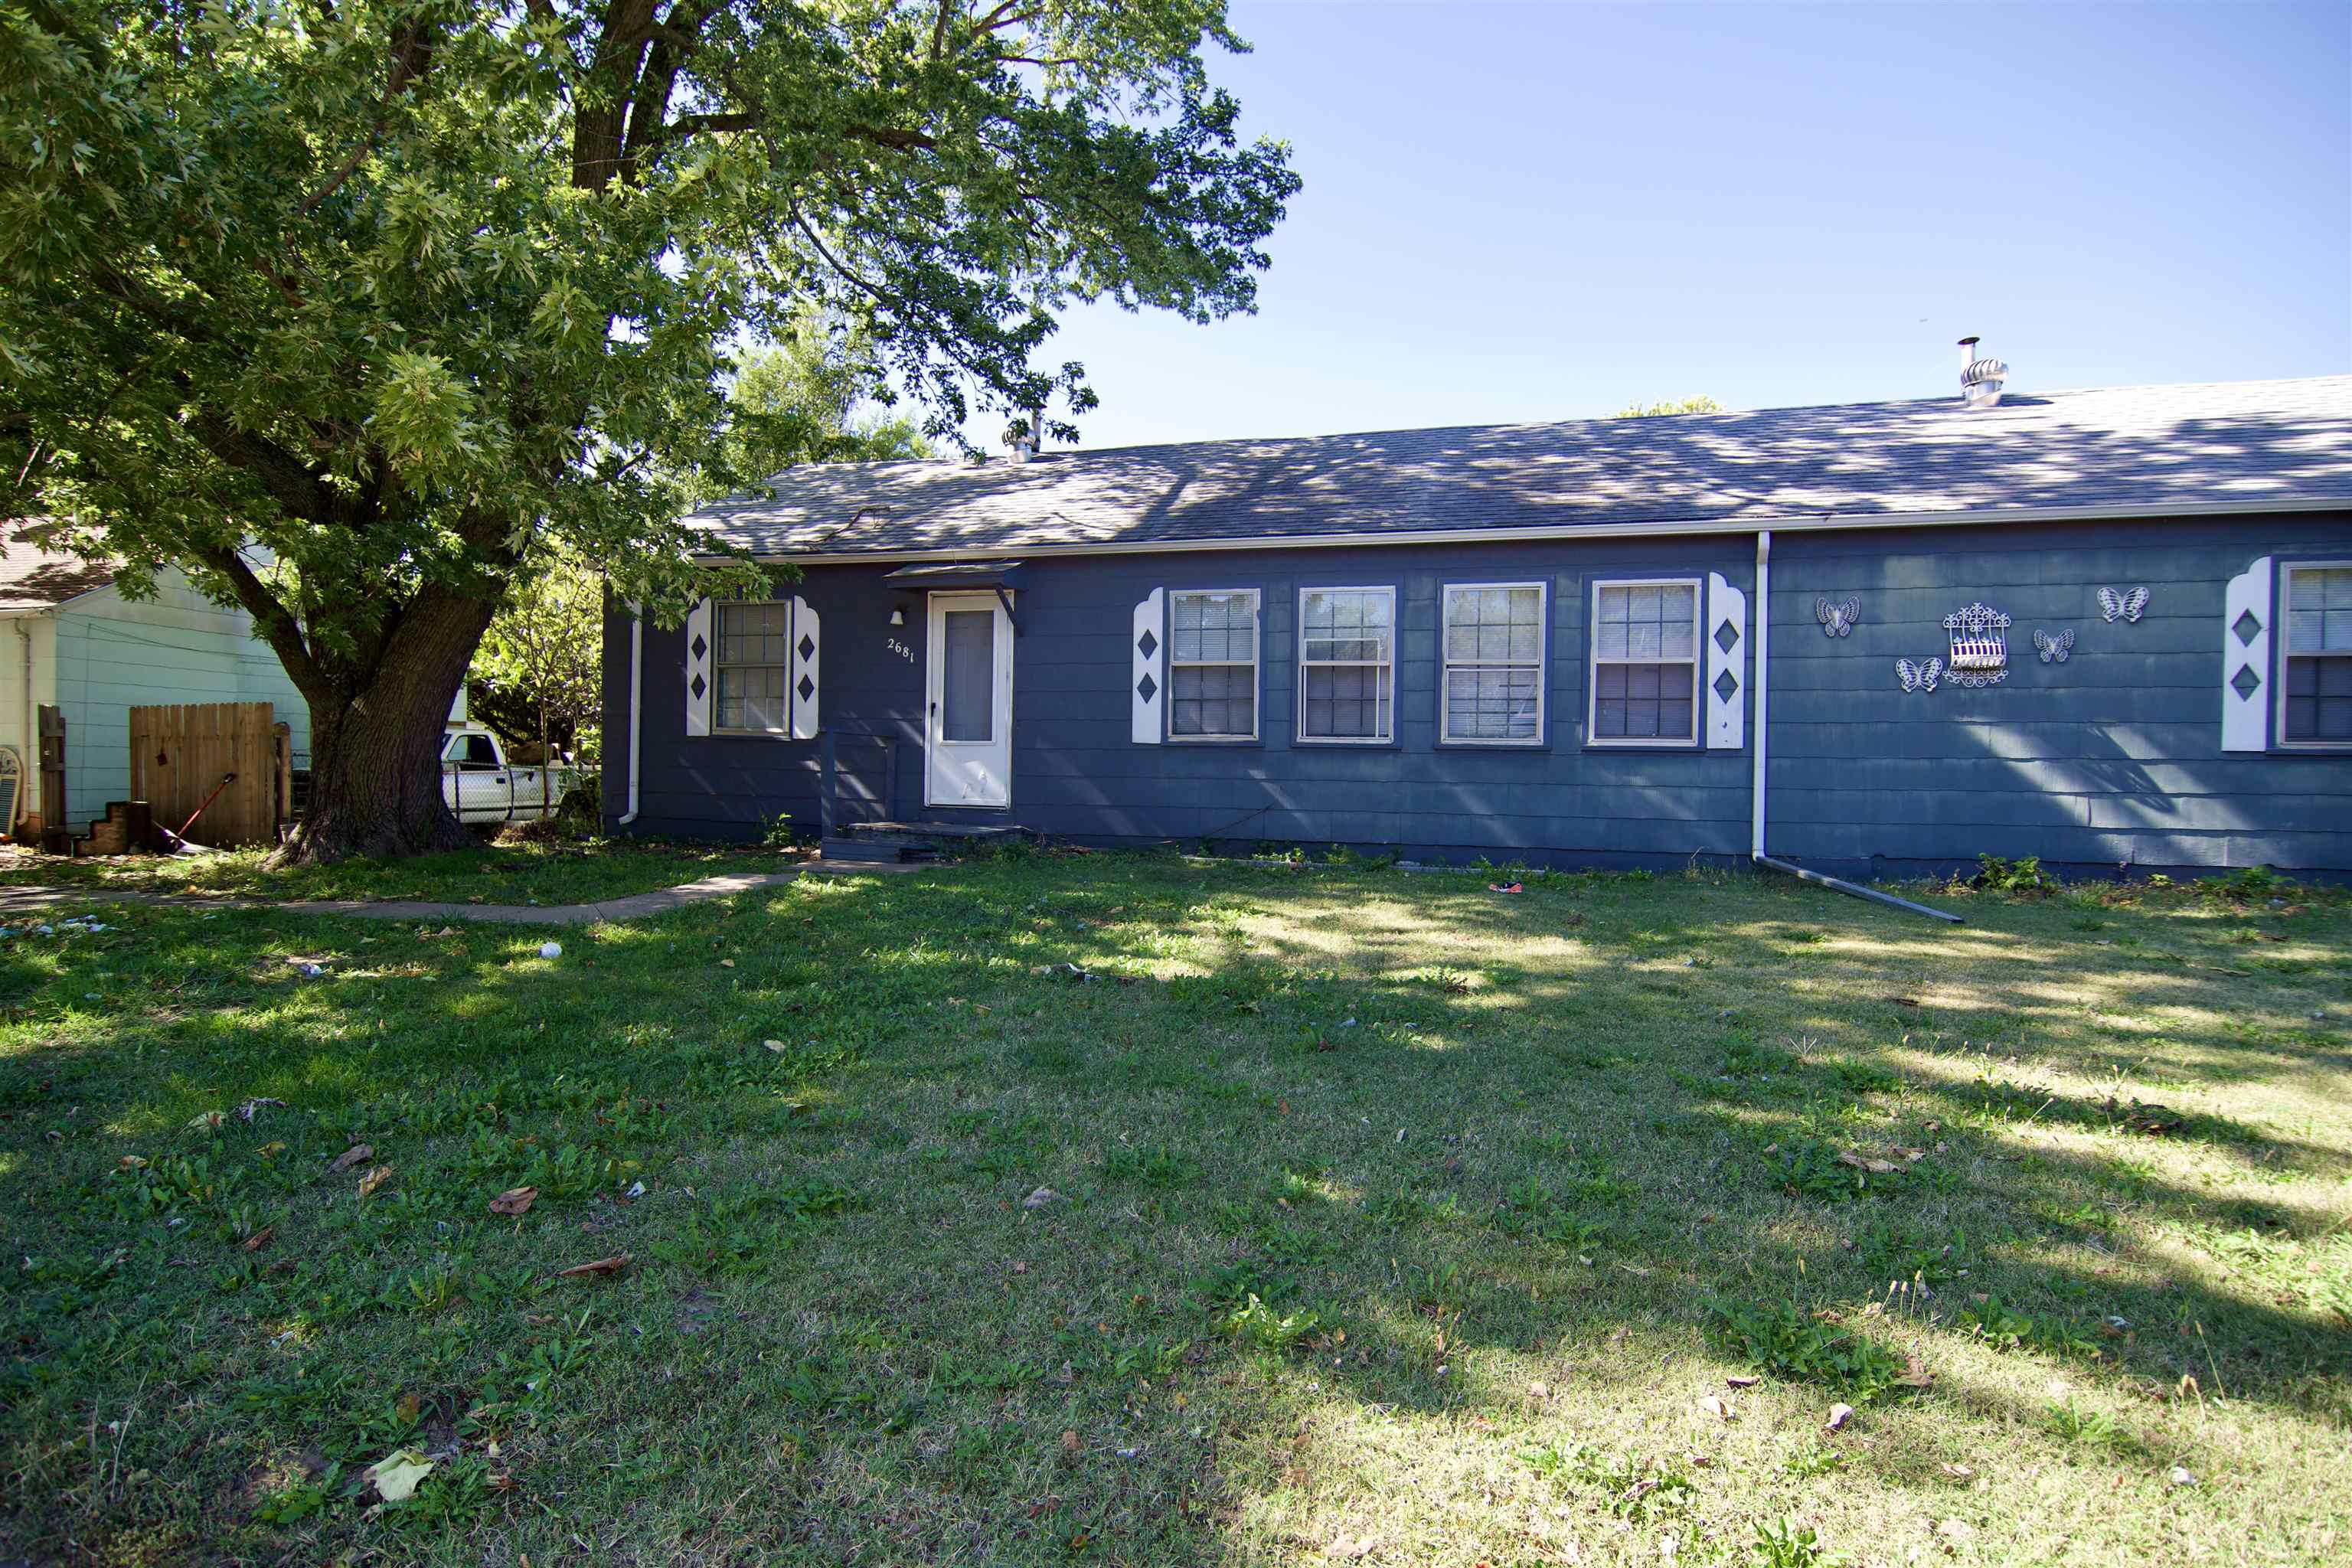 5bed, 3bath duplex w/carport on .43 acres being sold as-is. Great investment property opportunity an